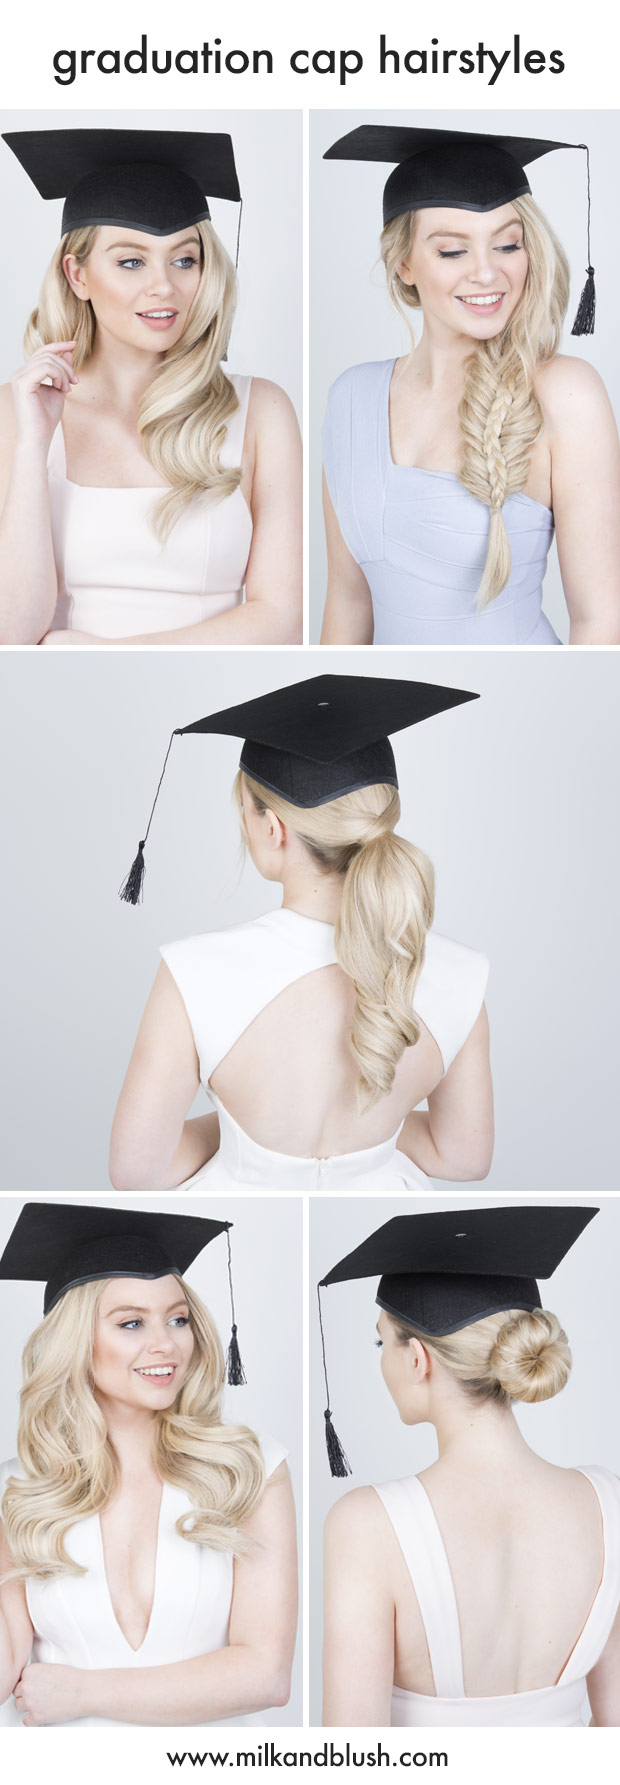 5 graduation cap hairstyles | hair extensions blog | hair